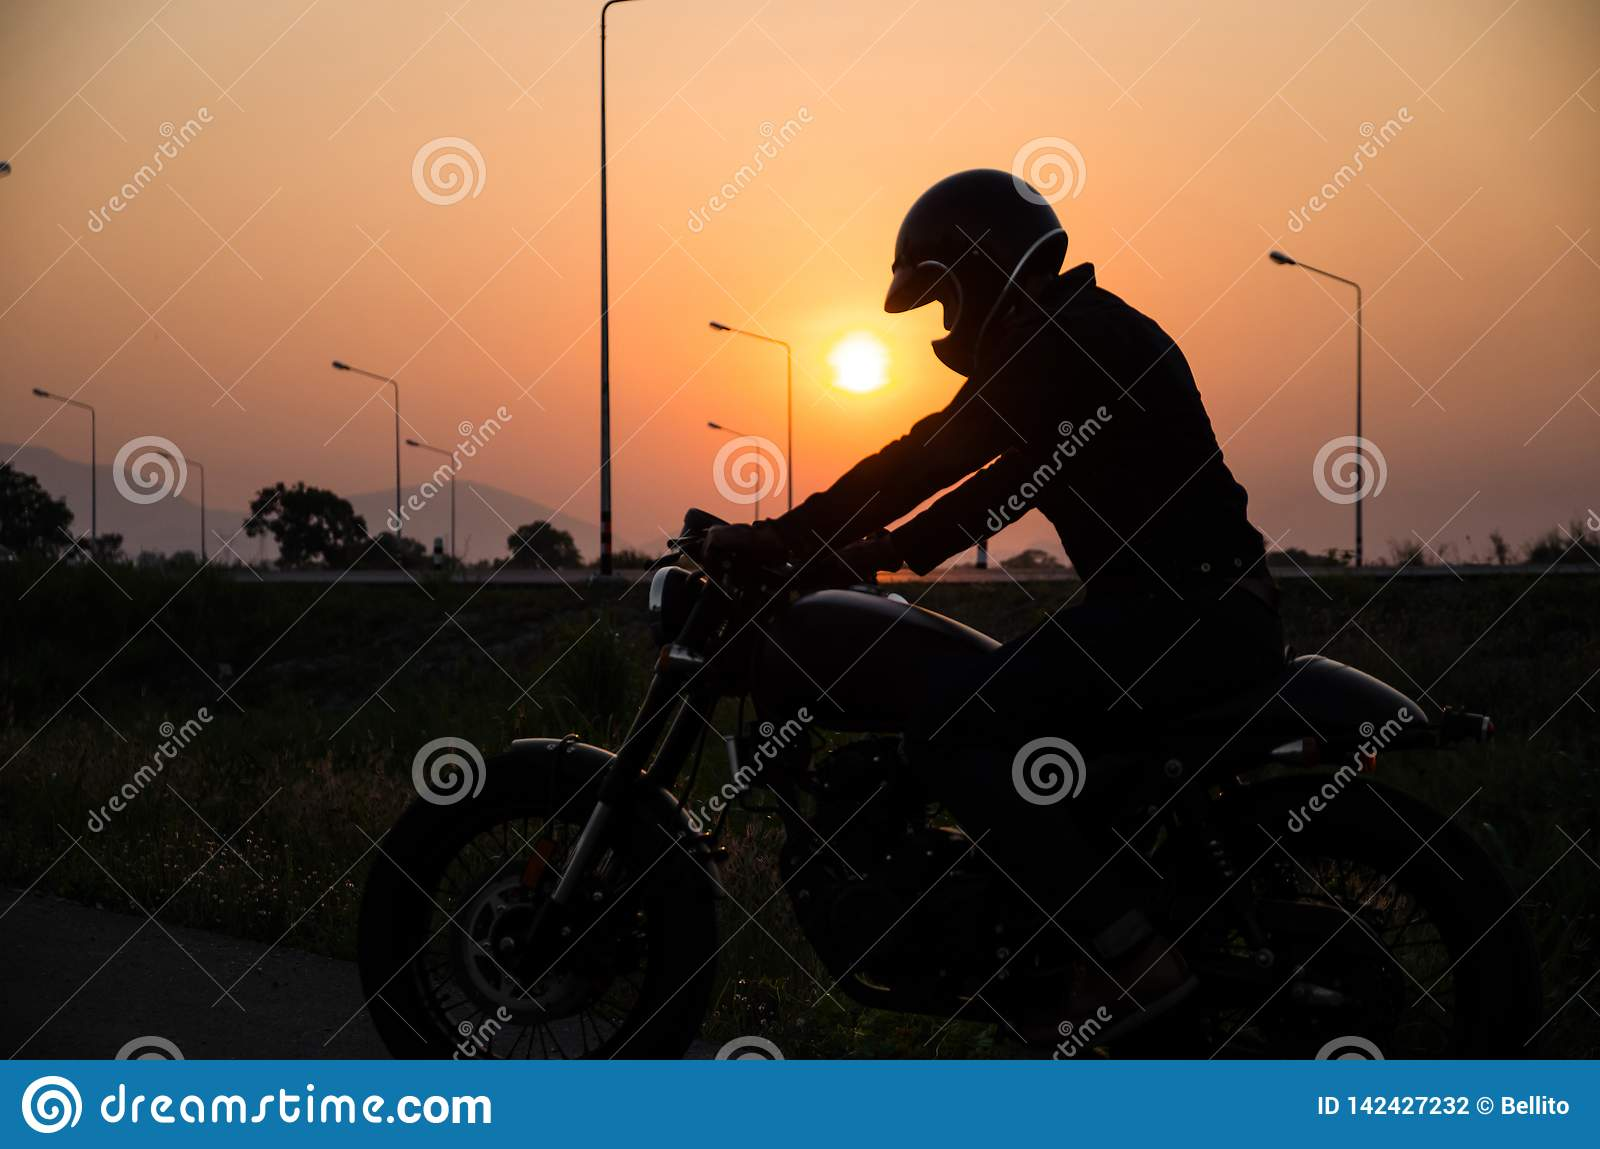 Silhouette of man riding vintage motorcycle cafe racer style with helmet